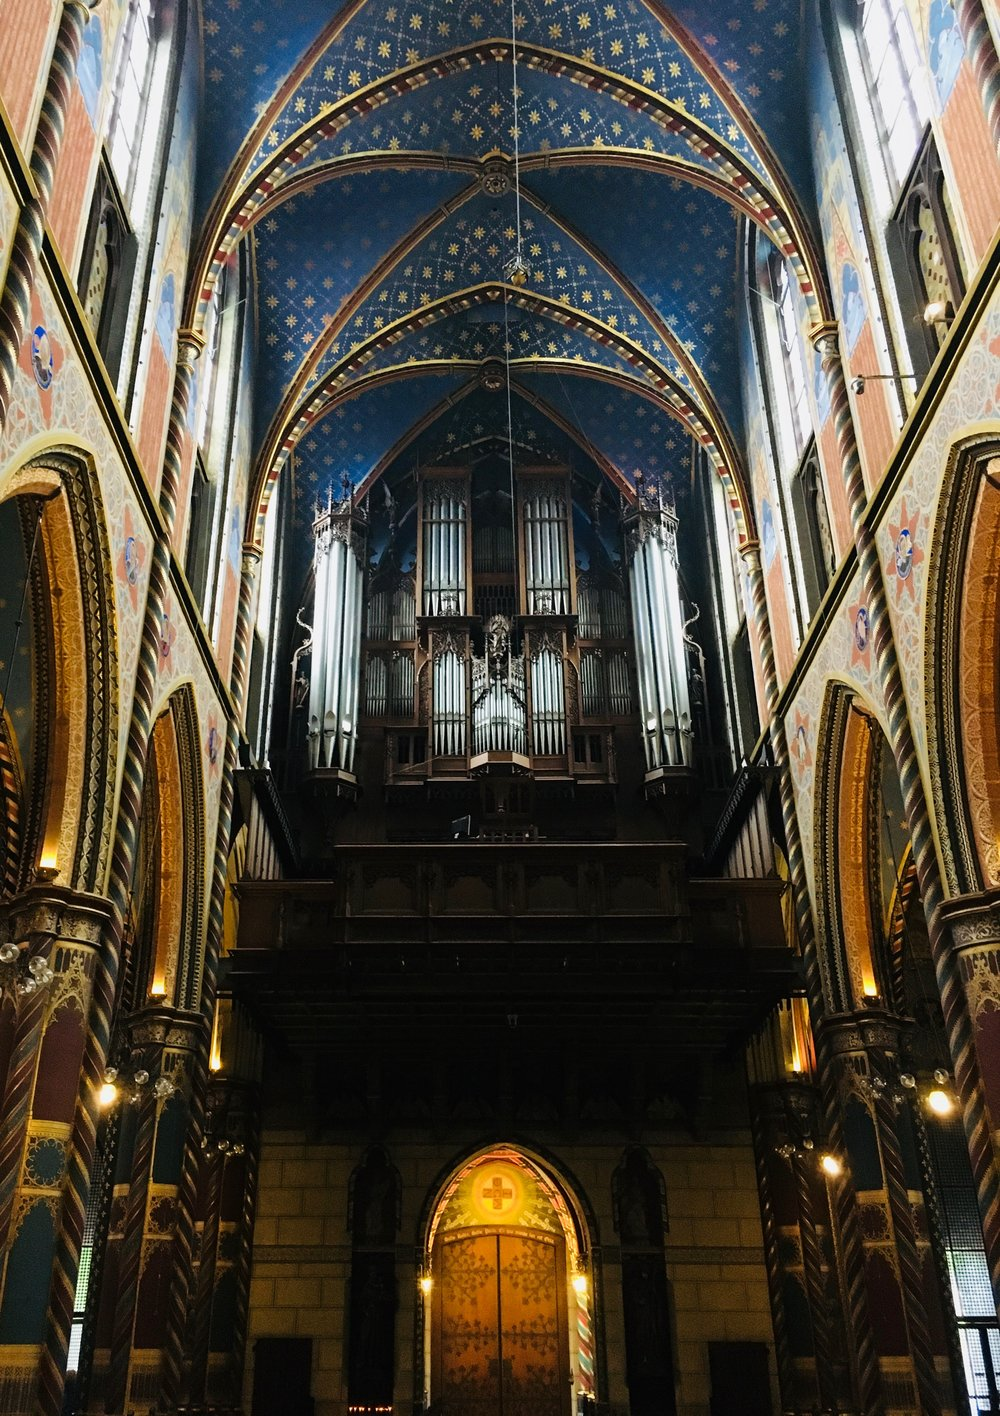 Boston Organ Studio member visits the romantic organ in Kevalaer, enroute to meeting the group in Amsterdam.